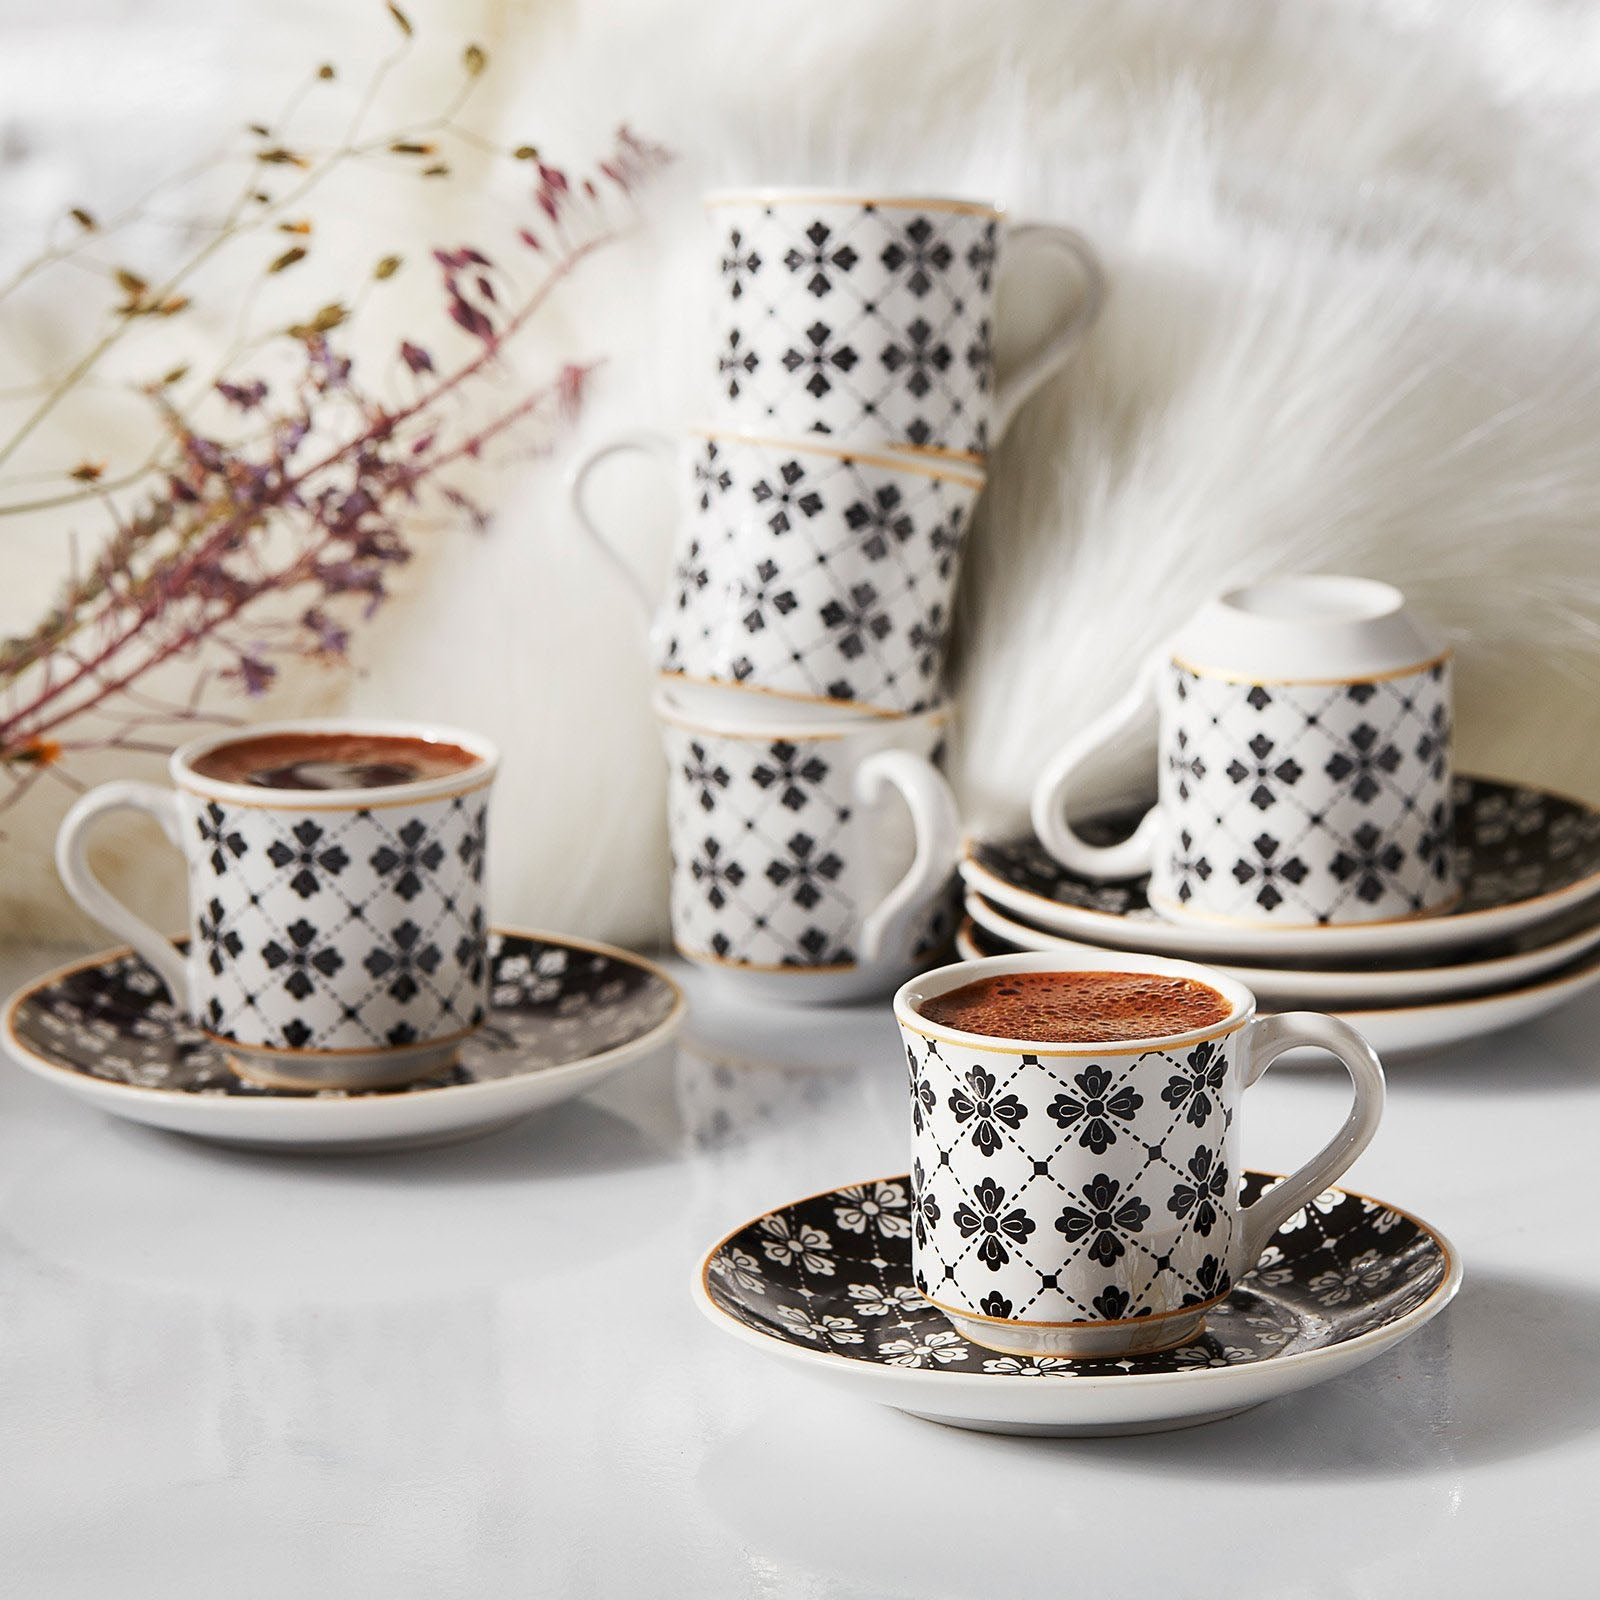 Apricot Eylem Set of 6 Coffee Cups 153.03.06.1876 -  طقم فناجين قهوة 6 فناجين مشمش - Shop Online Furniture and Home Decor Store in Dubai, UAE at ebarza